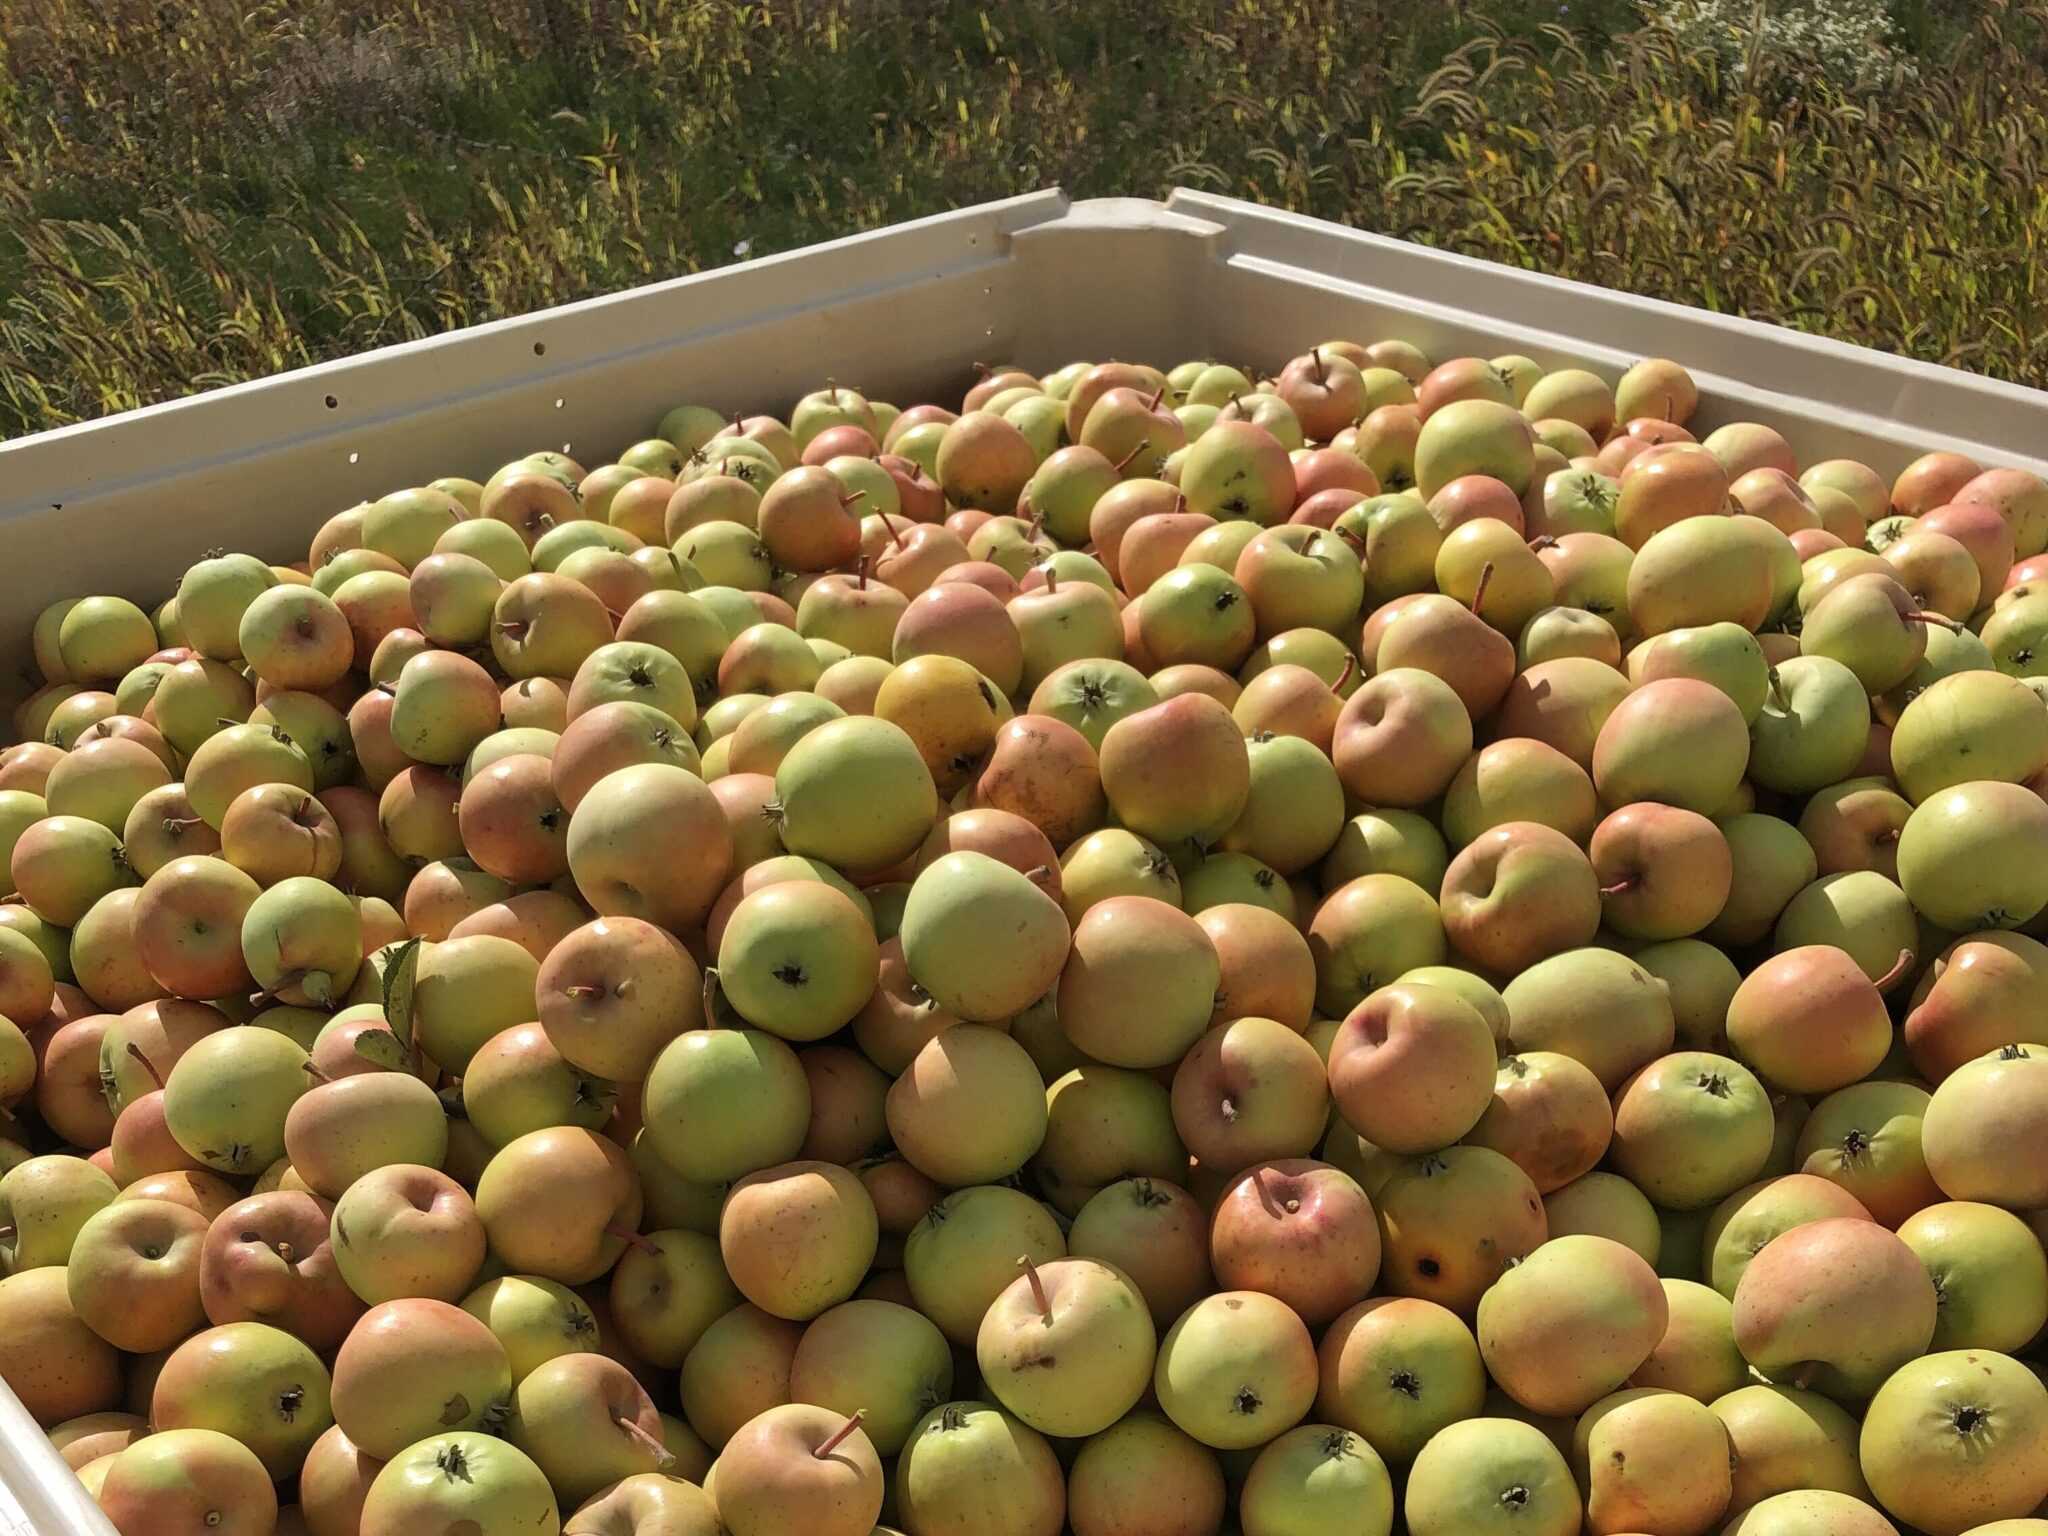 Bin of harrison cider apples waiting for the press at the orchard in prince edward county cidery